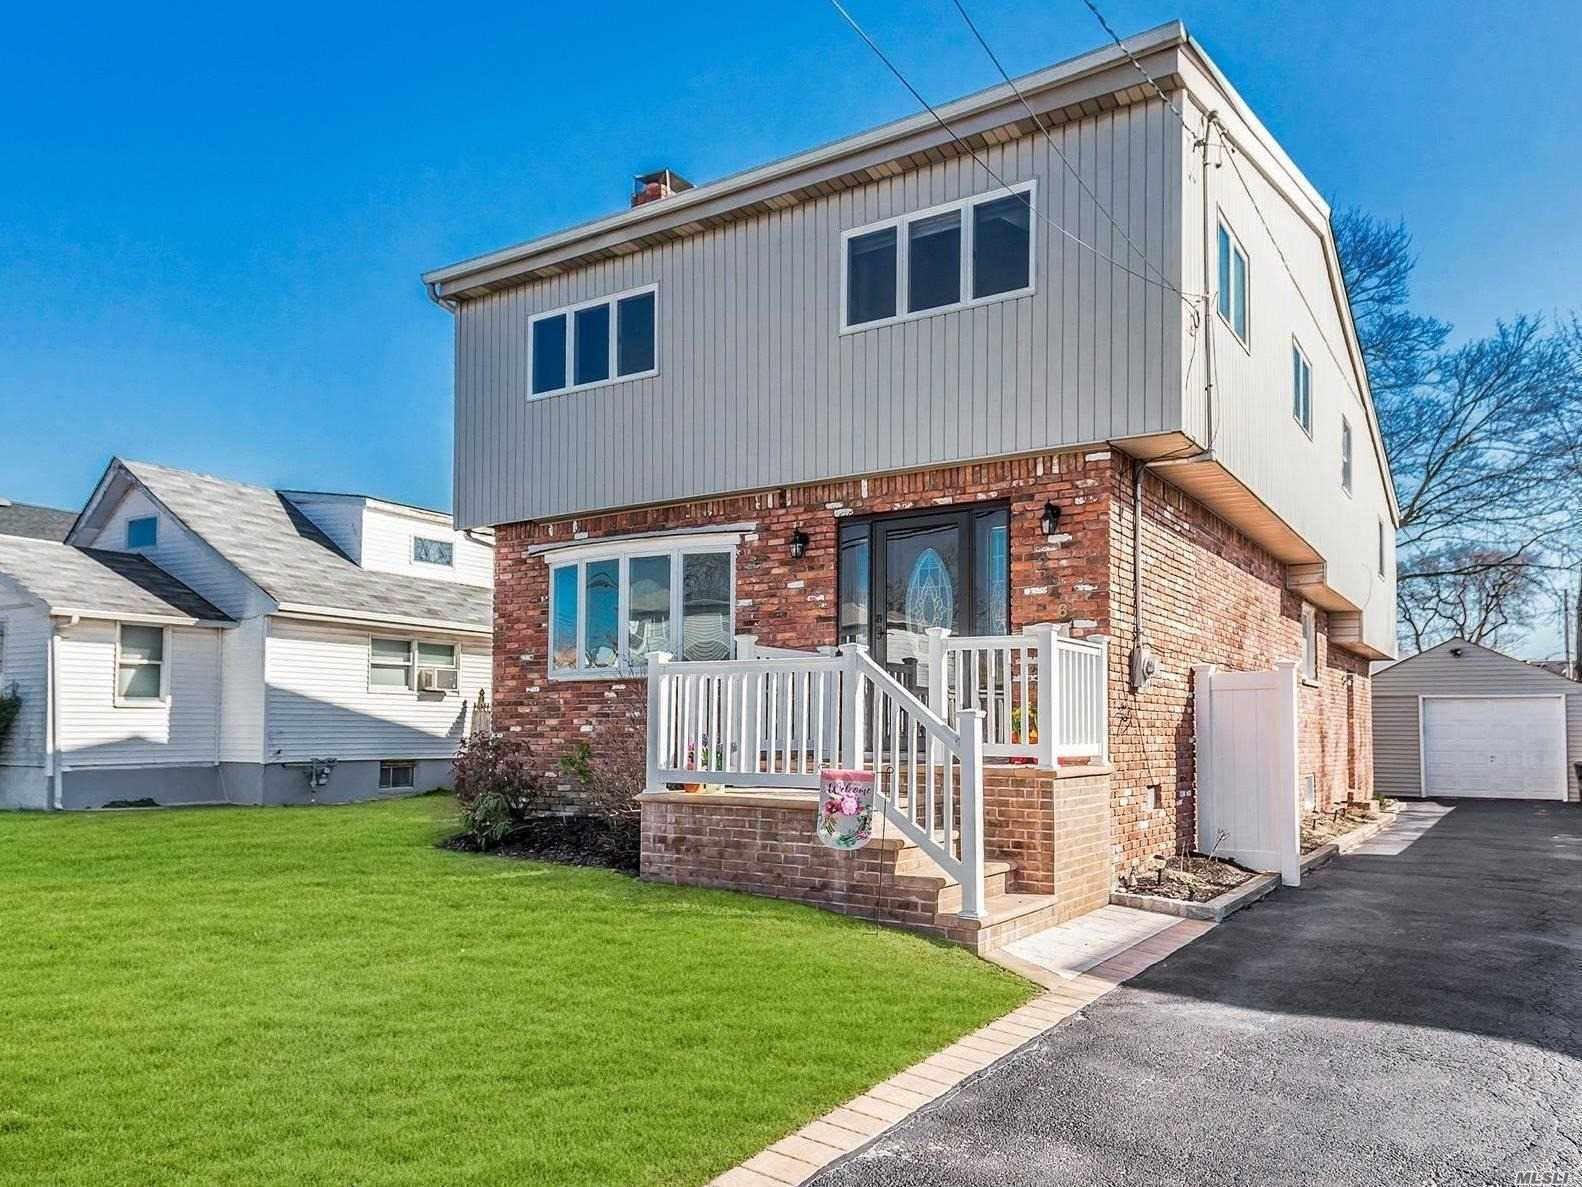 2446 New Place, Bellmore, NY 11710 - MLS#: 3205771